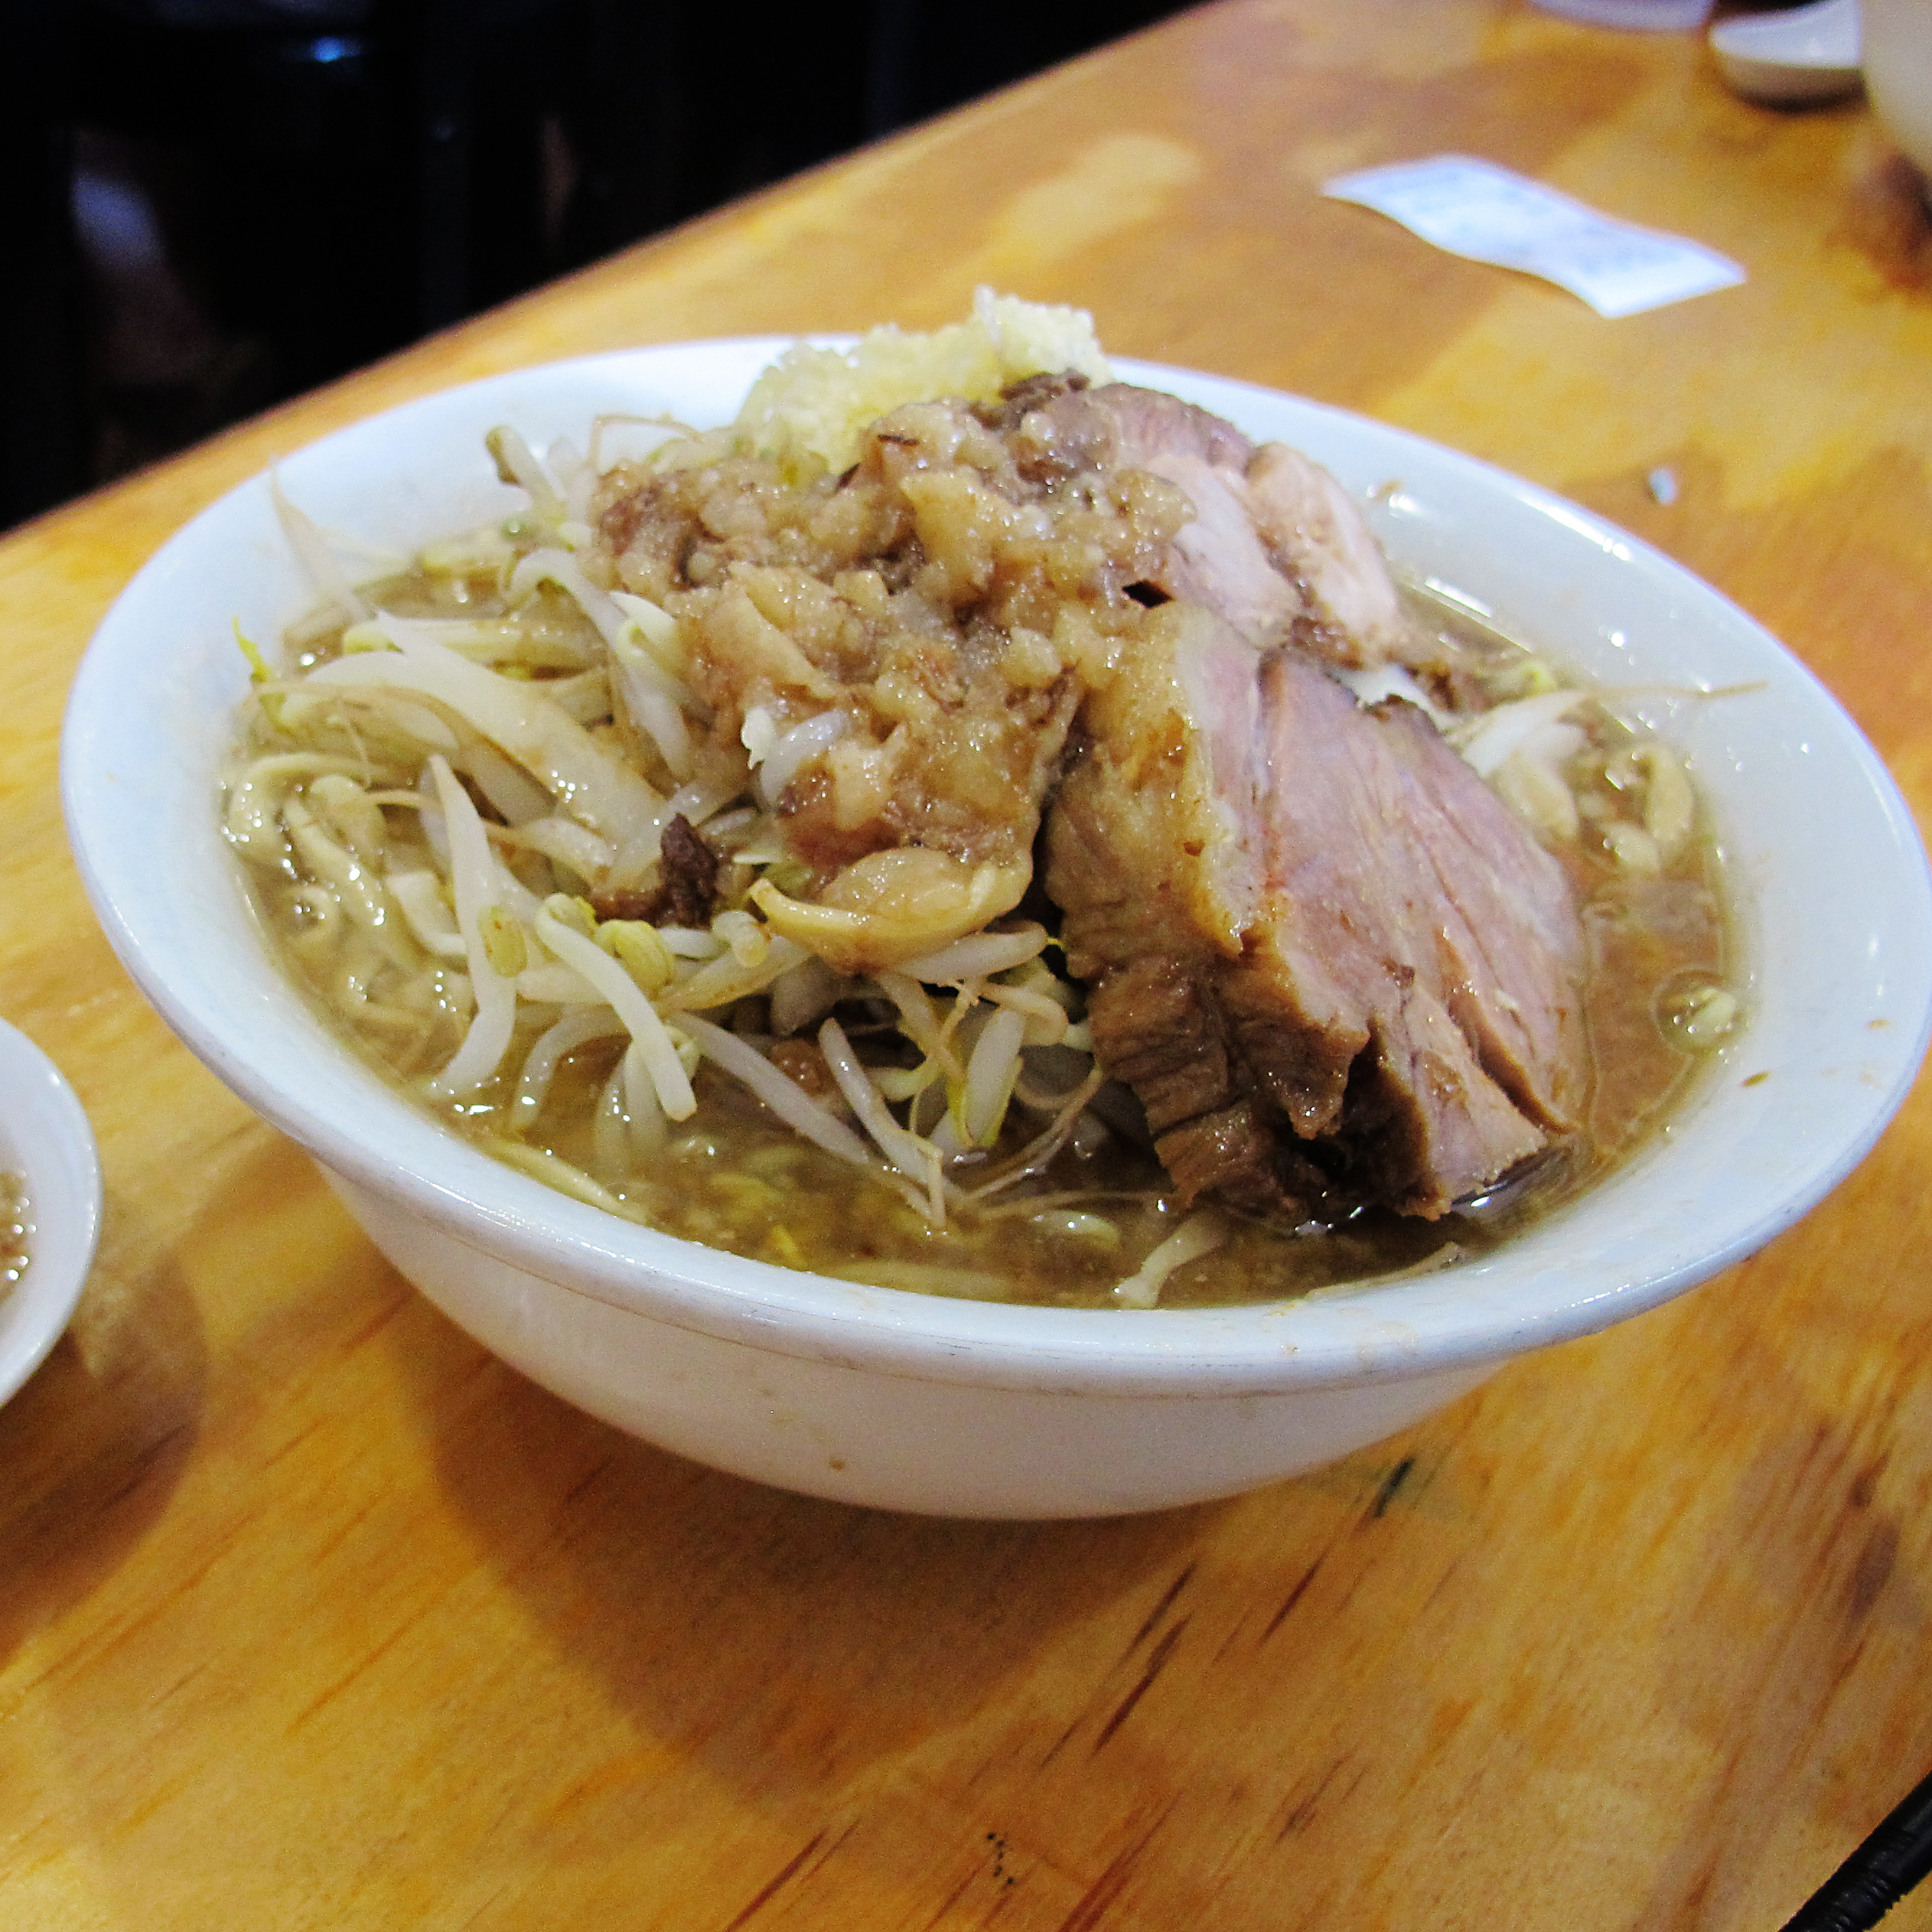 There are two choices at Yume Wo Karate: ramen topped with pork ($12), or ramen topped with more pork ($14). Extra garlic and emulsified fat can be added, too.